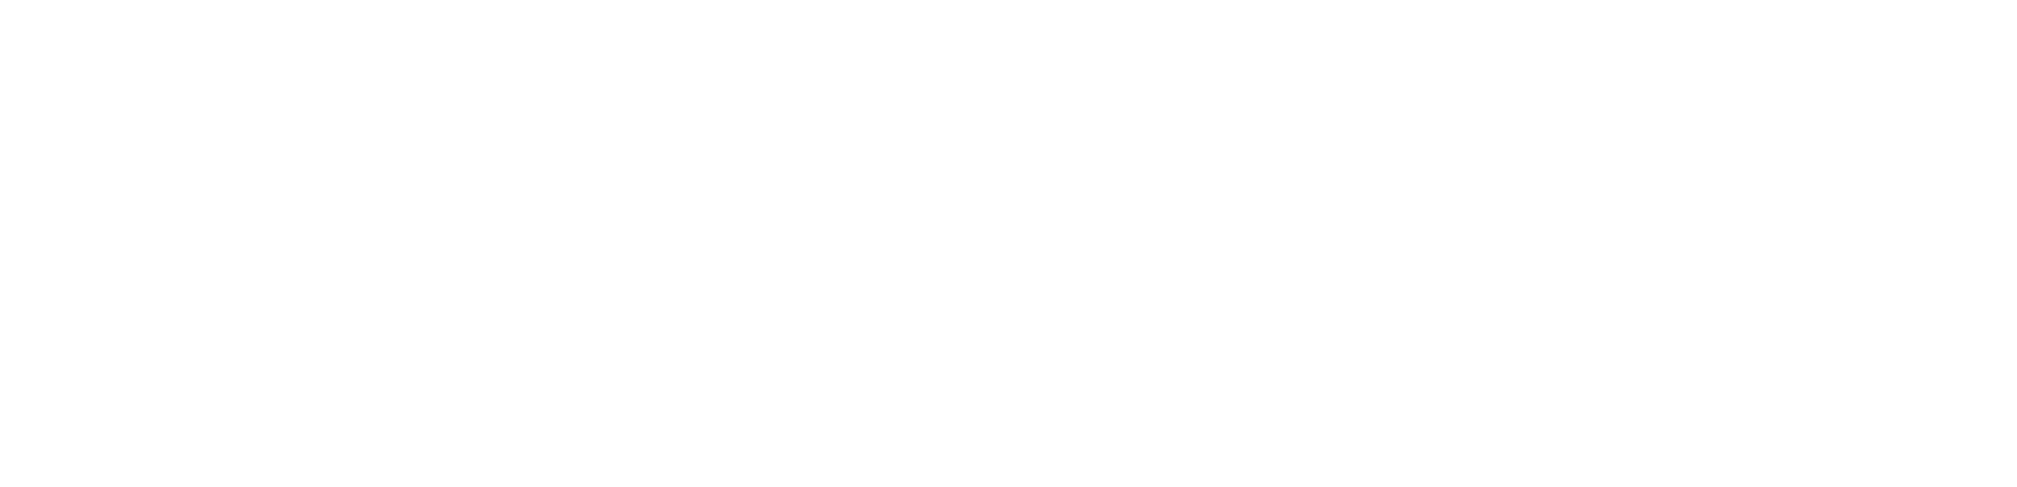 Geojobs.biz - Geospatial Career Portal brought to you by Spatial Media LLC